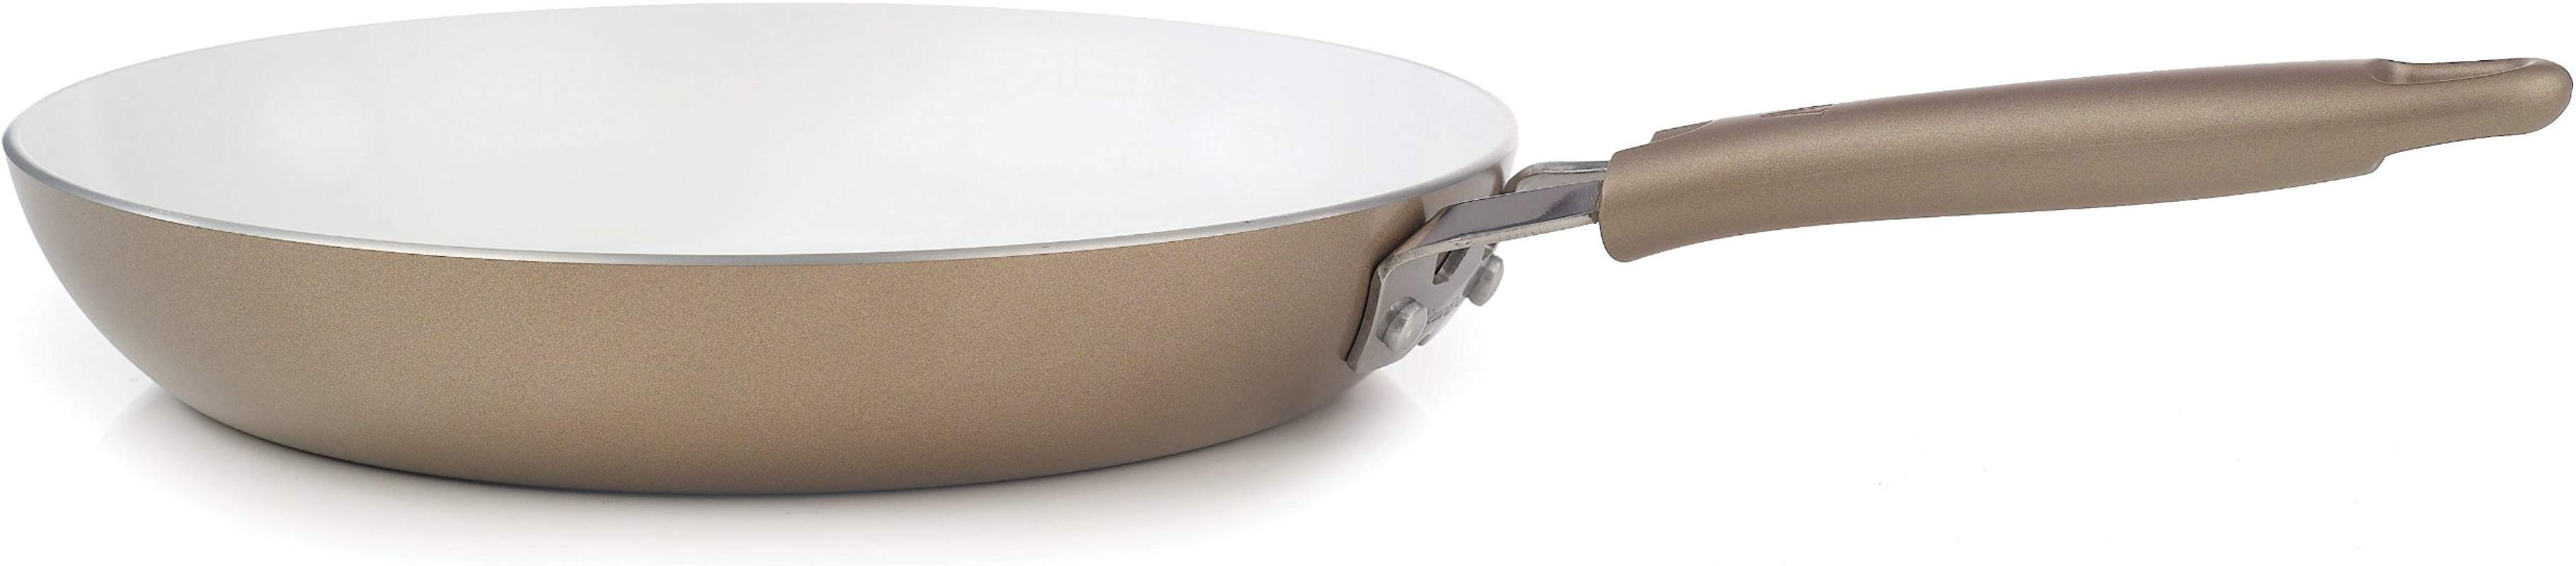 WearEver C94407 Pure Living Nonstick Ceramic Coating FPOA PTFE Free Saute Pan Fry Pan Cookware 12 Inch Gold